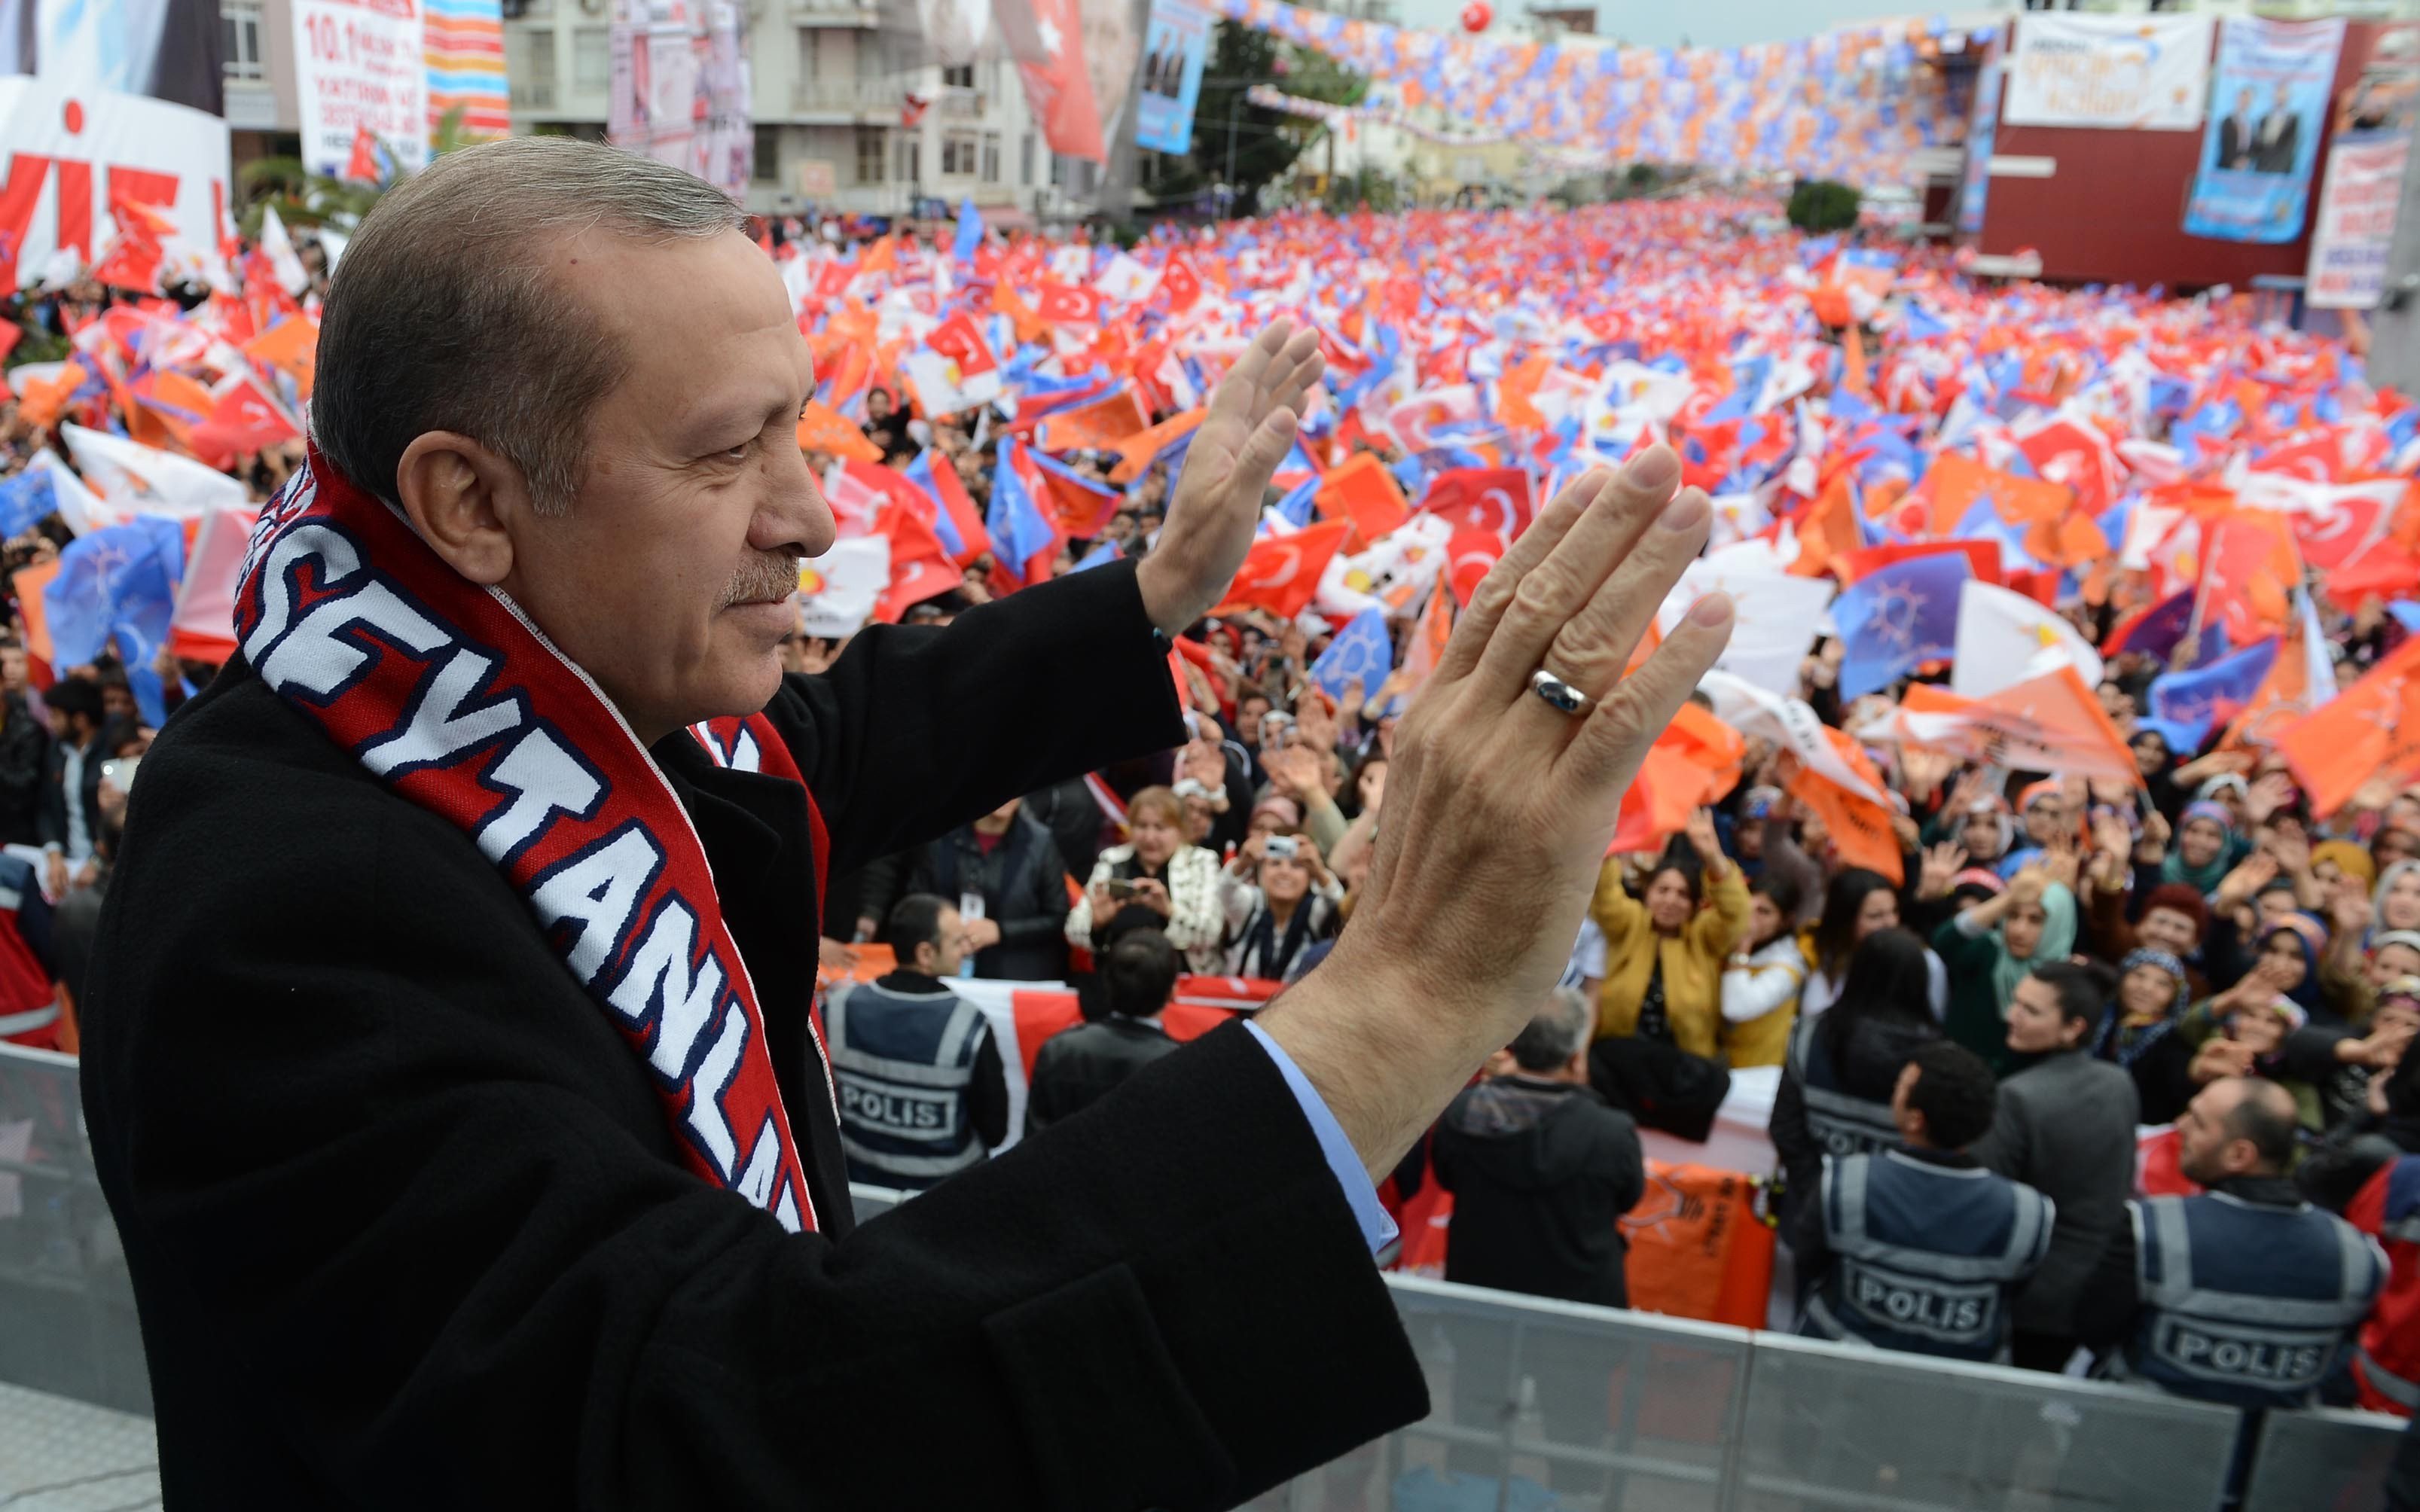 Turkish Prime Minister Recep Tayyip Erdogan greets the crowd during a local election rally organized by the ruling Justice and Development Party (AKP) in Mersin, Turkey on March 13, 2014